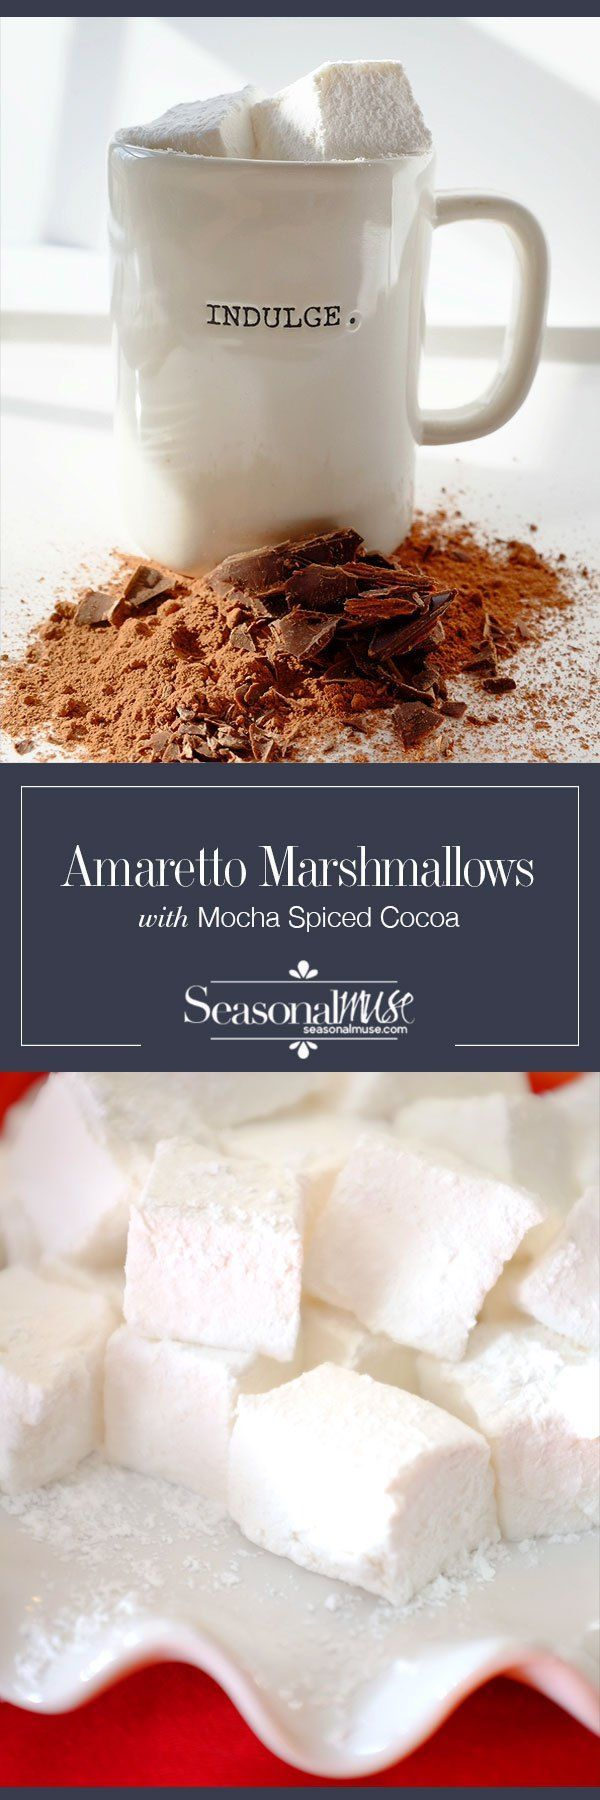 Homemade Marshmallows & Hot Spiced Mocha #flavoredmarshmallows